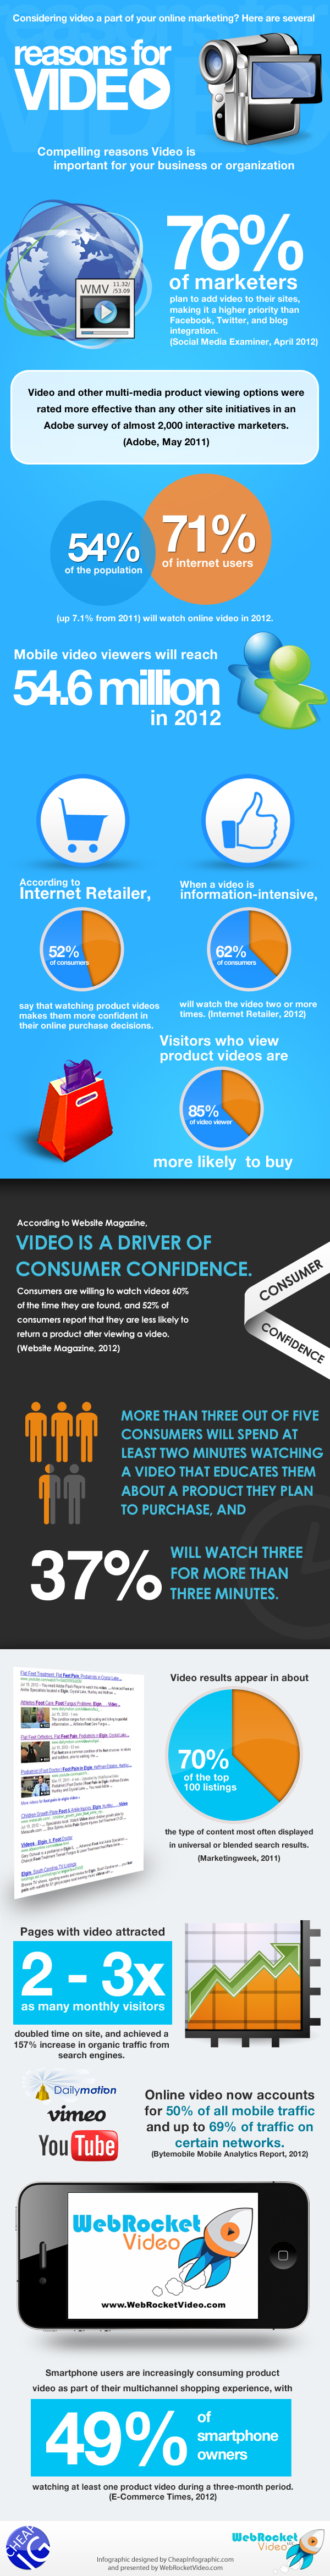 Compelling Reasons to Add Video to Your Website [infographic]